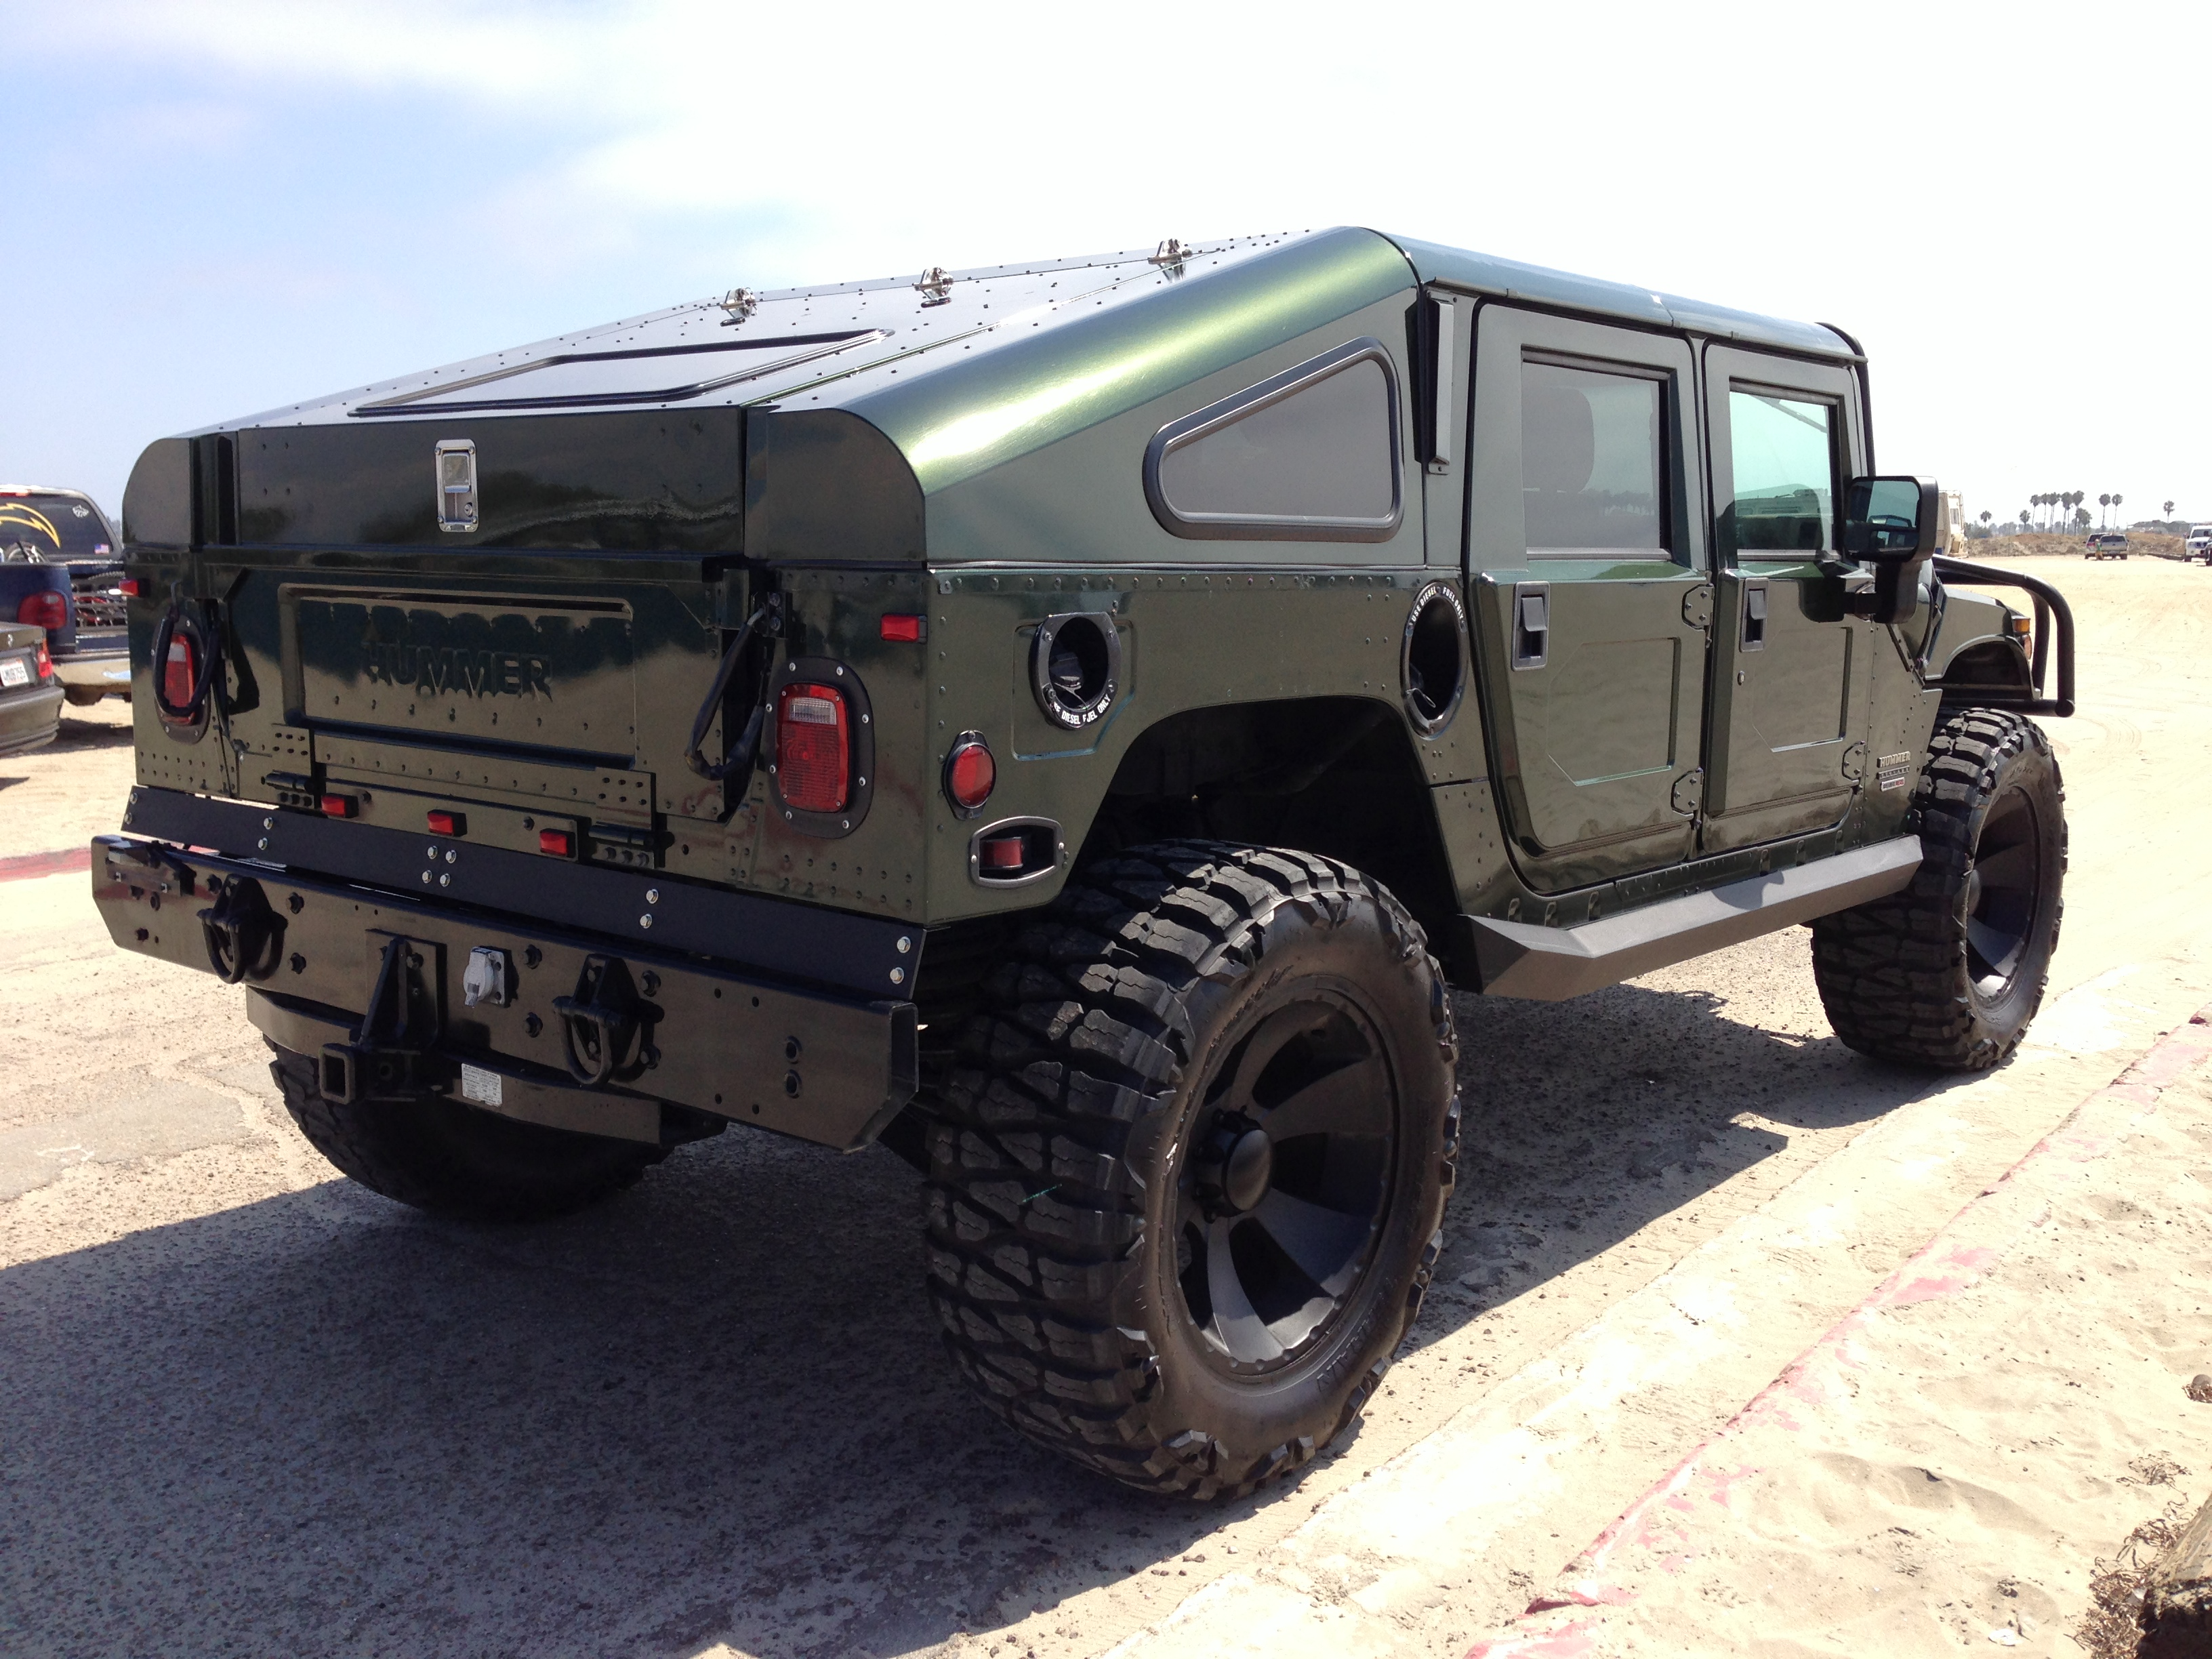 rare 1 of 1 2001 hummer h1hmc4 slant back duramax turbo sel